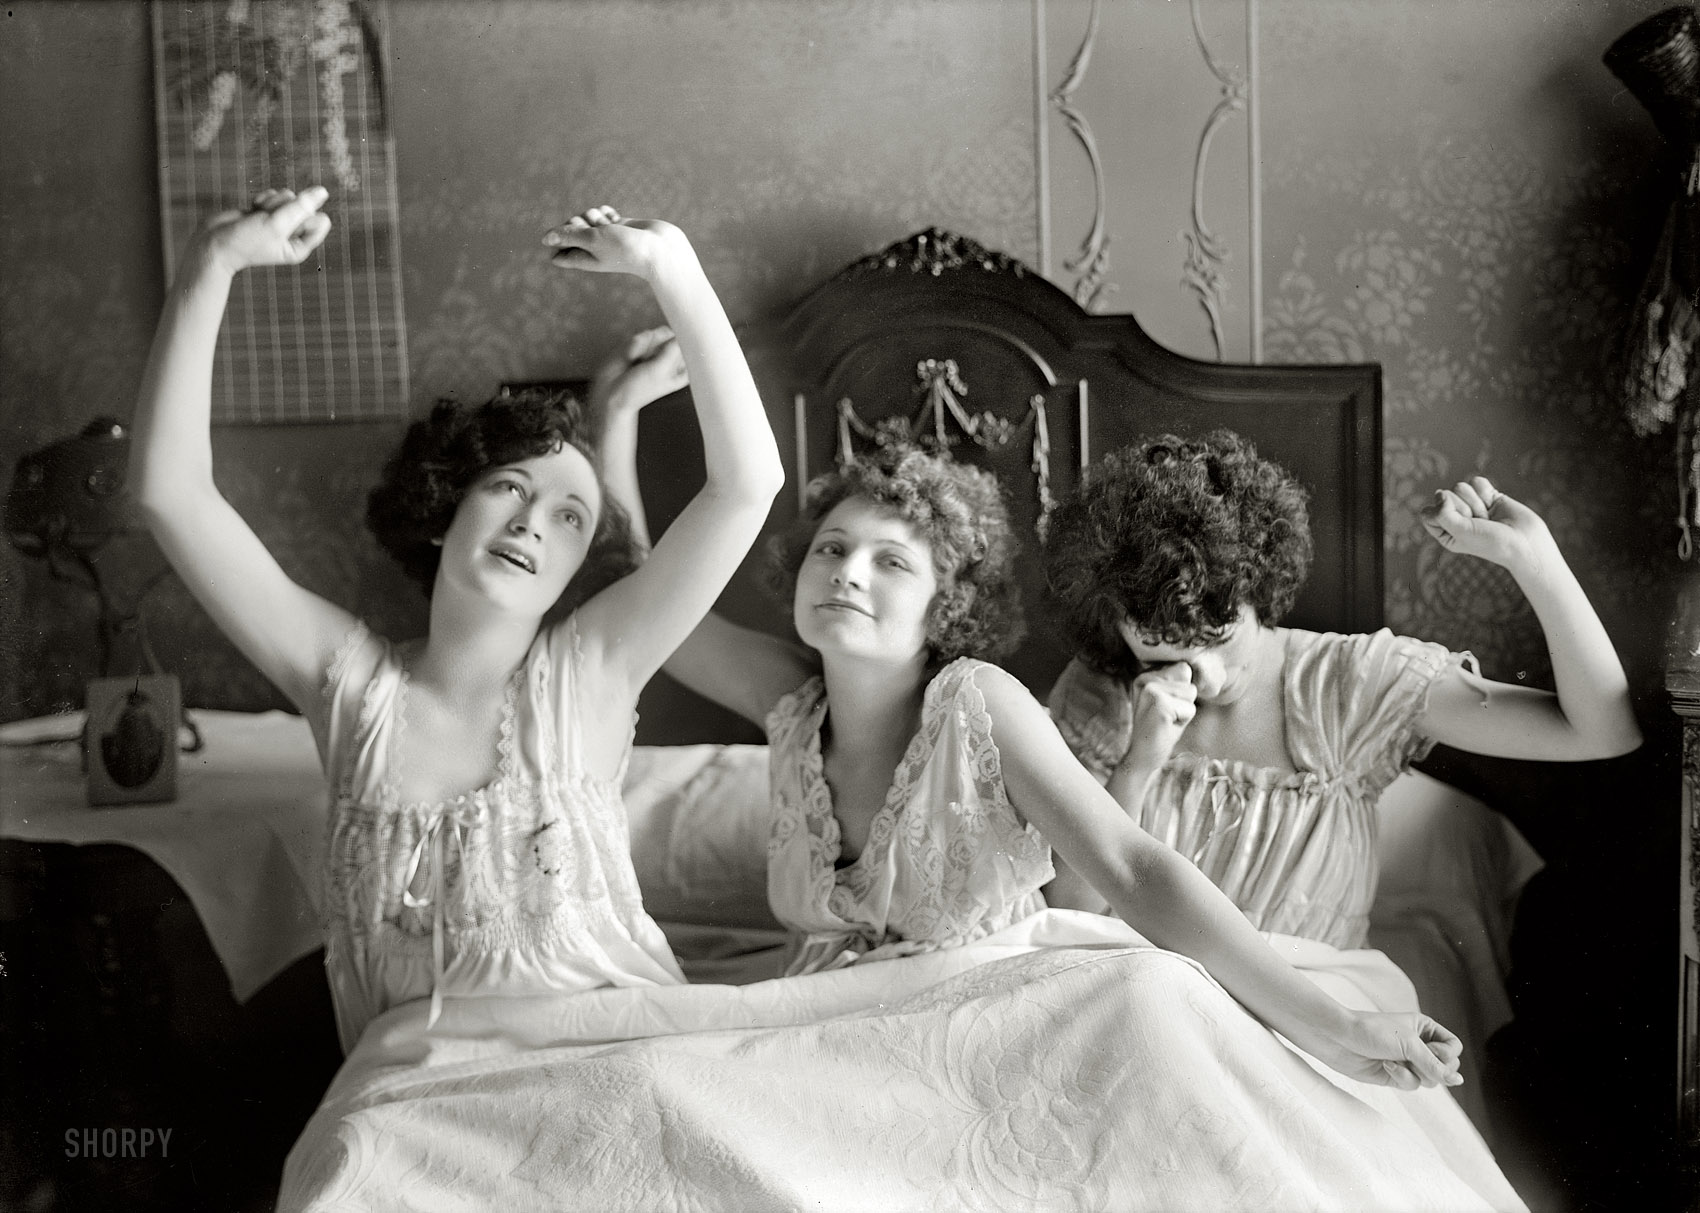 Shorpy Historic Picture Archive :: Sister Act: 1923 high-resolution photo